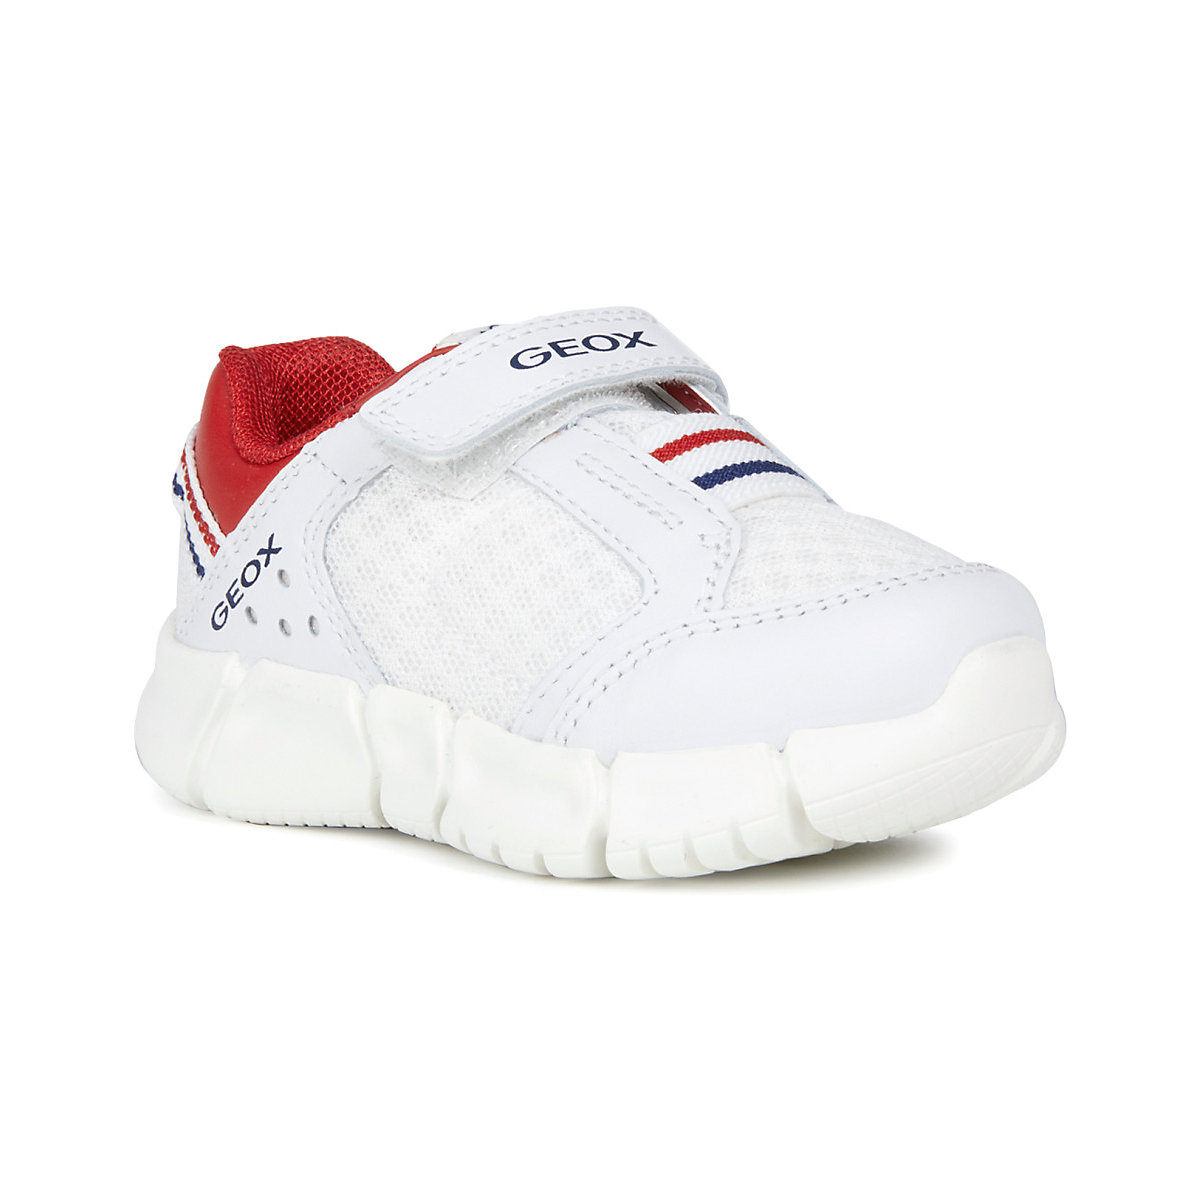 GEOX Kids' Sneakers 10614378 sport shoes for boys and girls men sport shoes